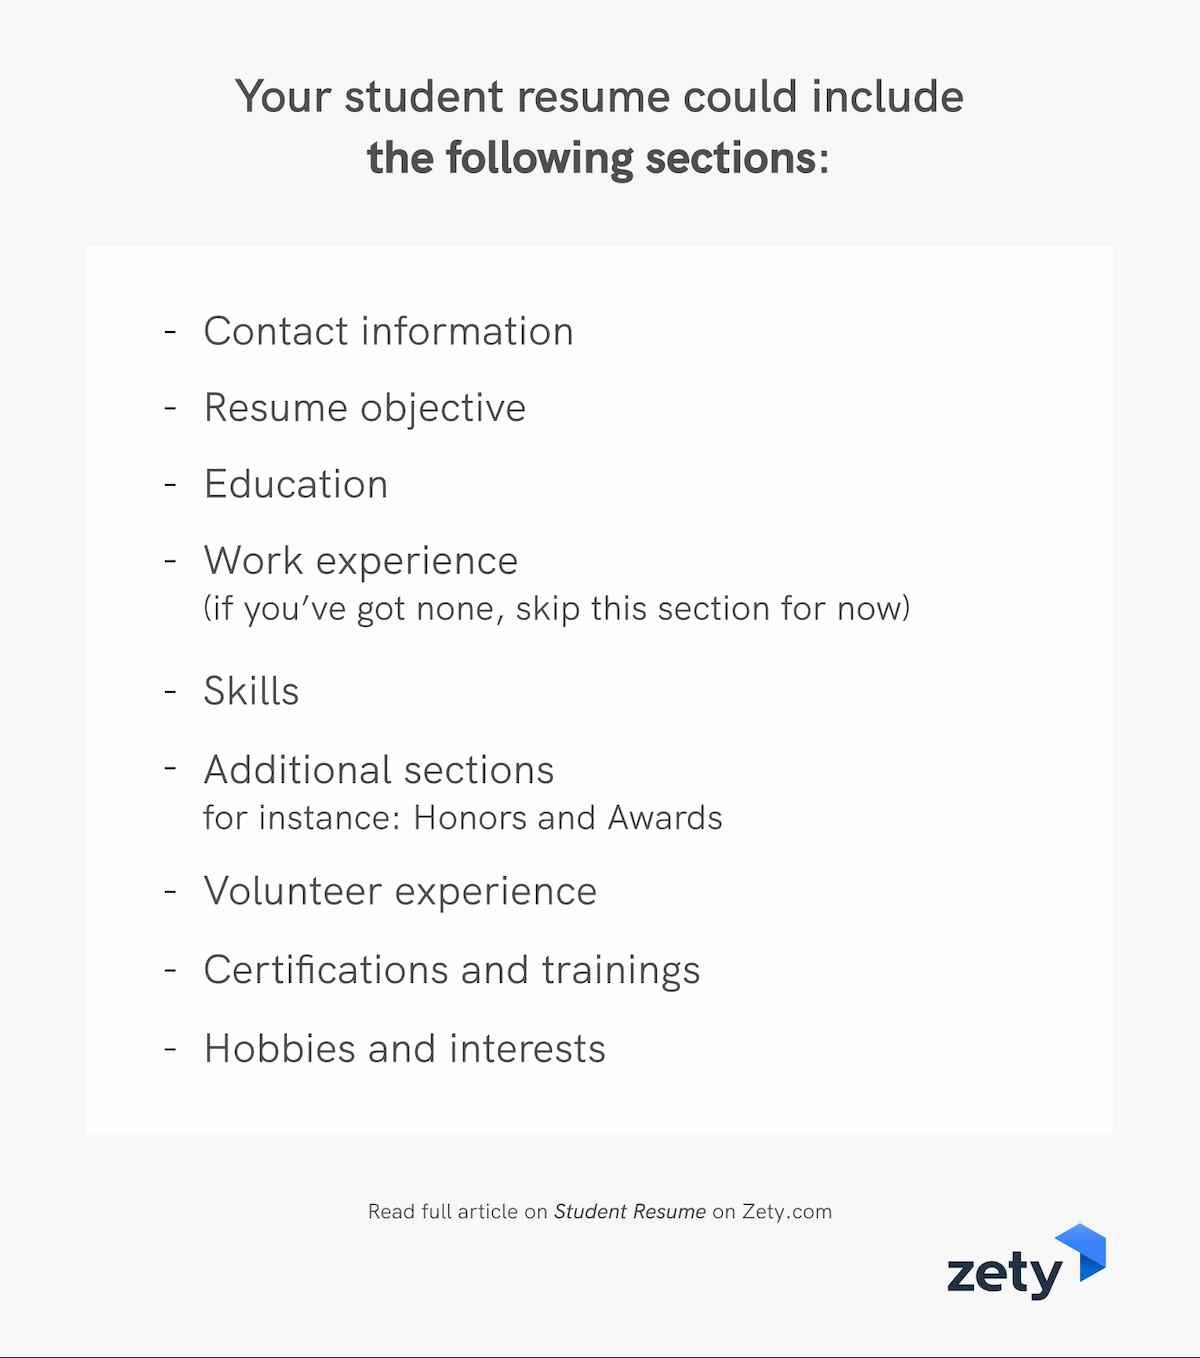 What sections should your student resume include